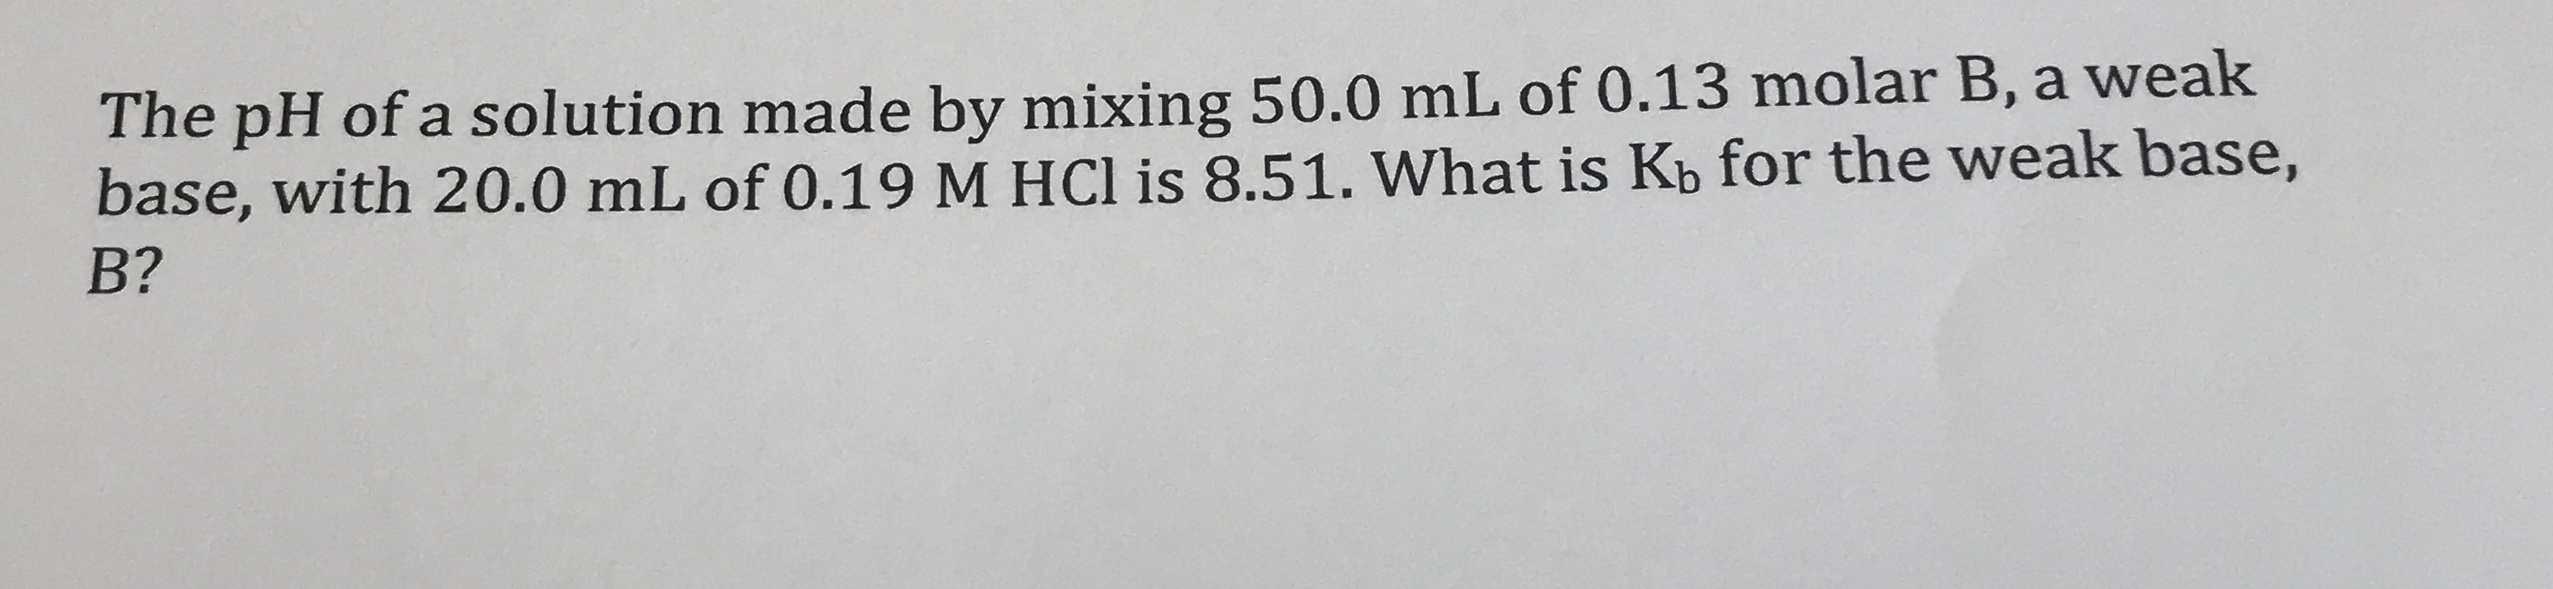 The pH of a solution made by mixing 50.0 mL of 0.13 molar B, a weak base, with 20.0 mL of 0.19 M HCl is 8.51. What is Kb for the weak base, B?